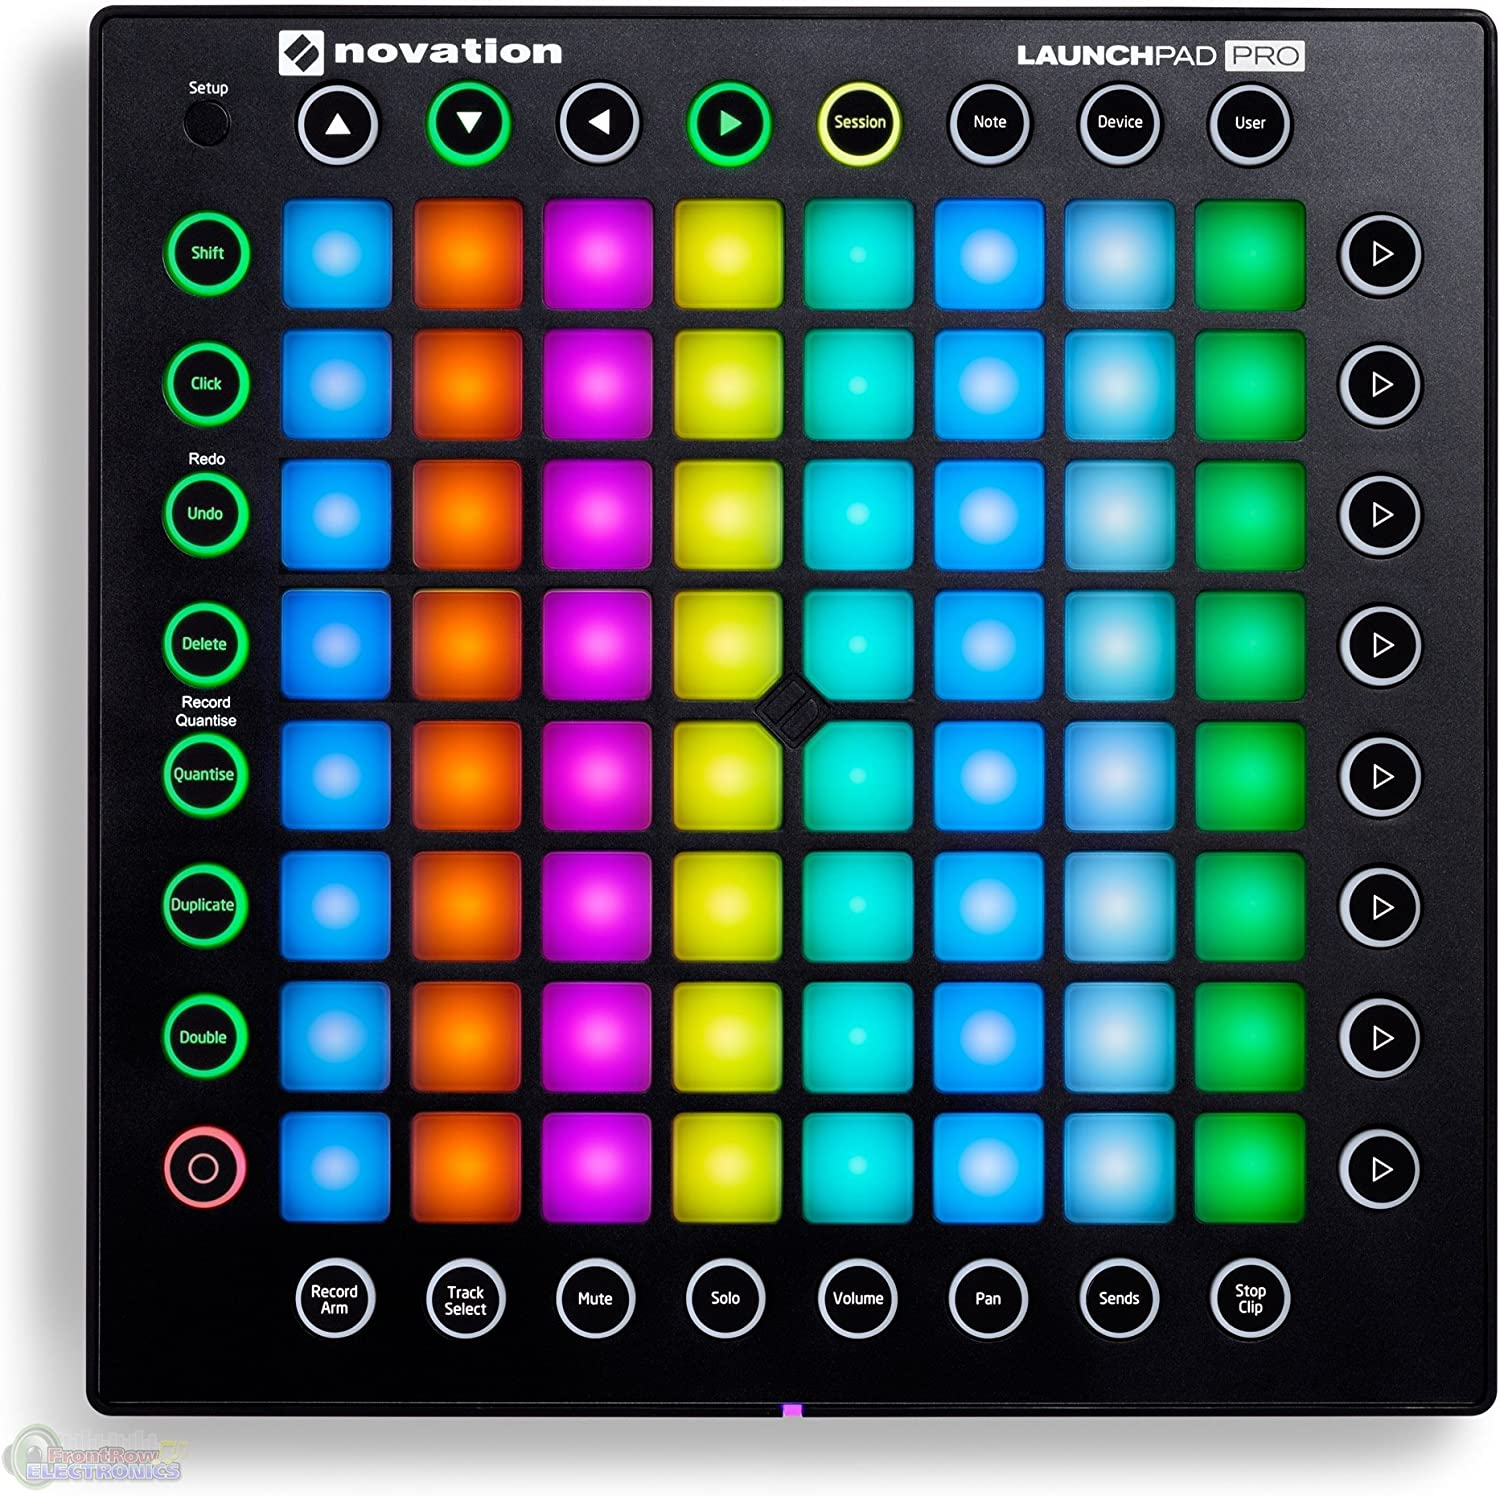 Amazon Com Novation Launchpad Pro Usb Midi Controller With 1 Year Free Extended Warranty Musical Instruments